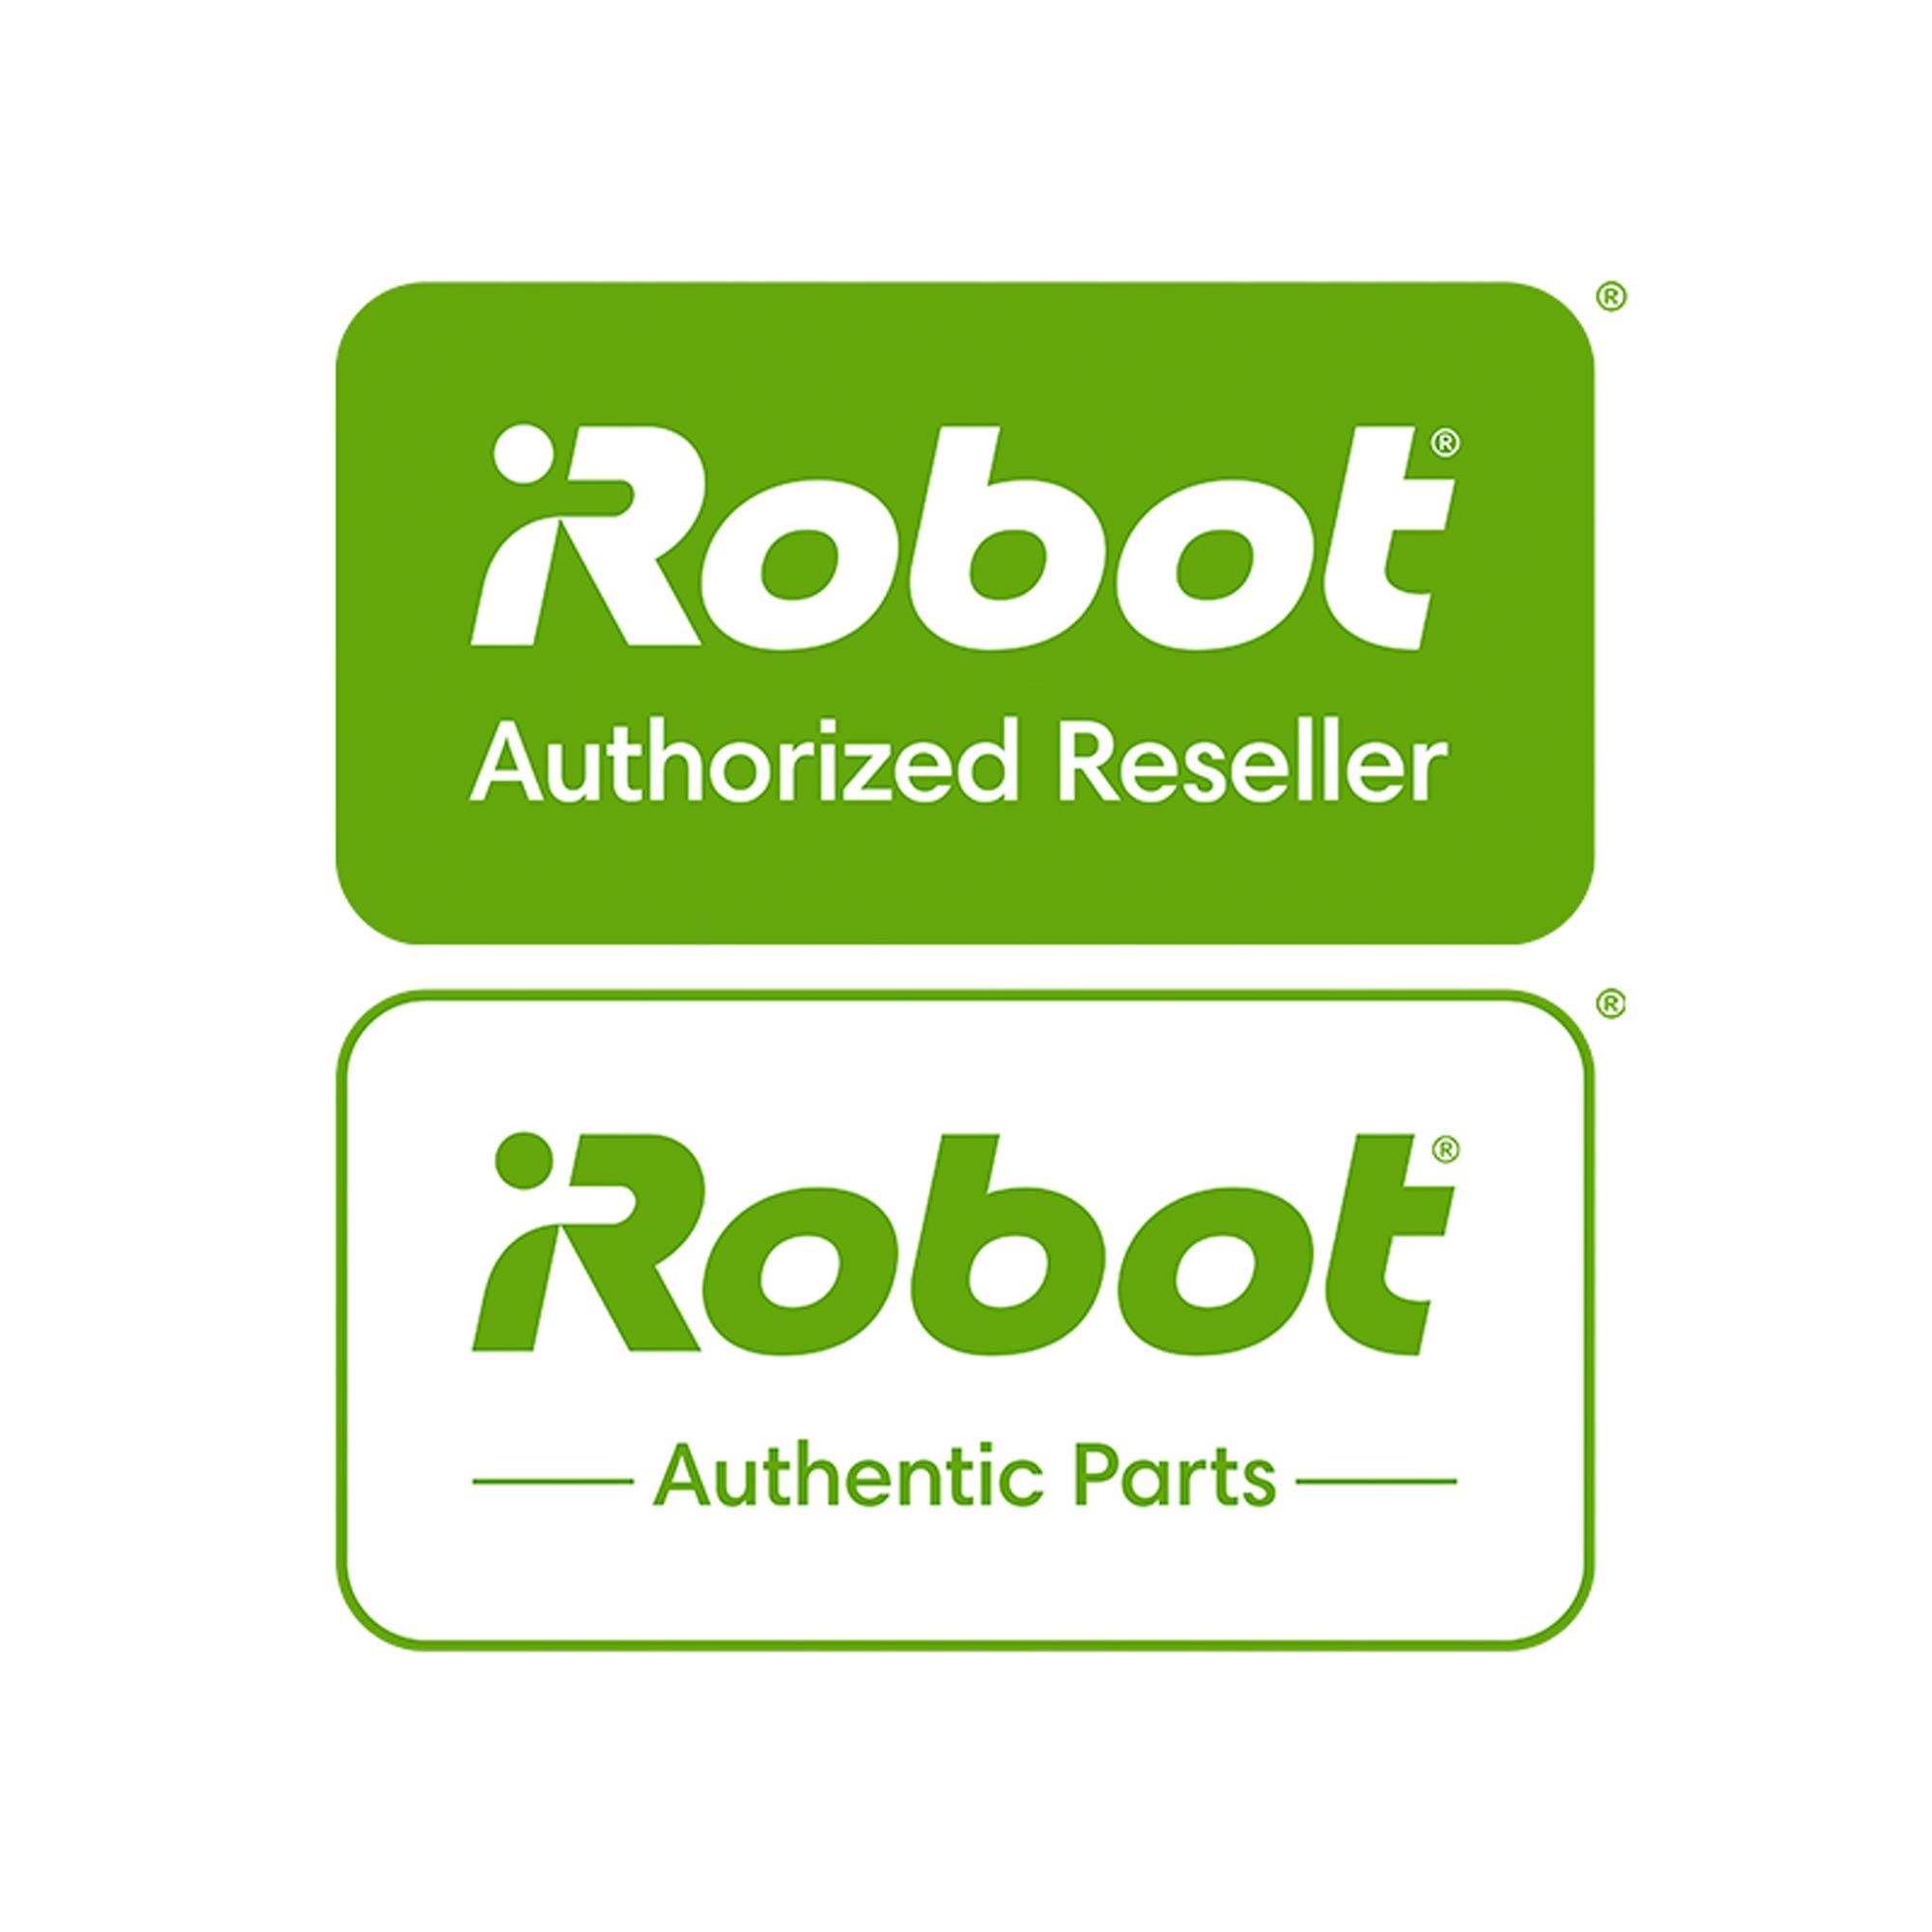 iRobot Authentic Replacement Parts- Roomba 1800 Lithium Ion Battery- Compatible with Roomba 960/895/890/860/695/680/690/675/640/614 by iRobot